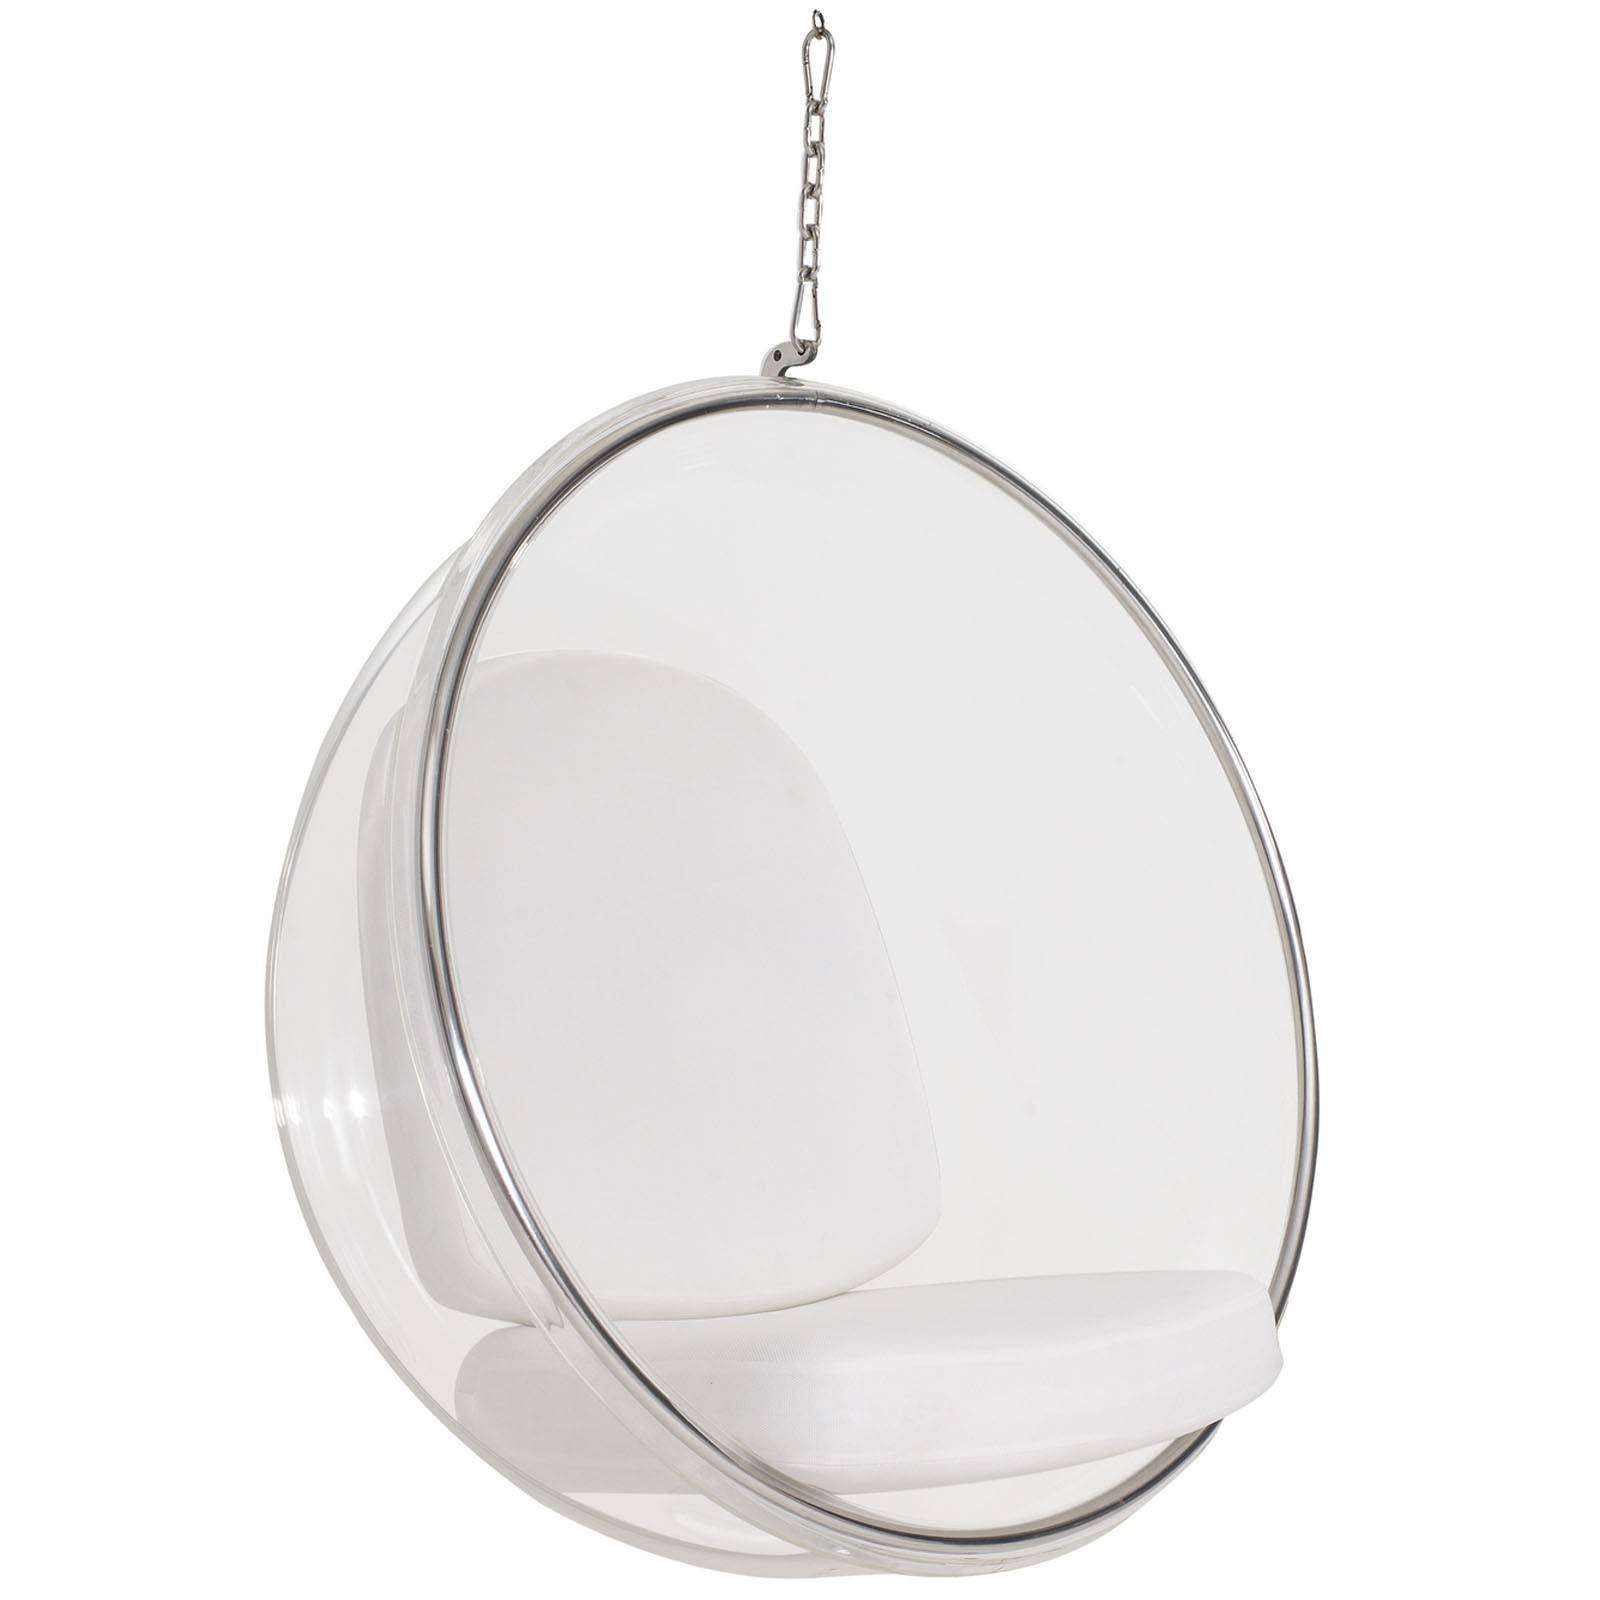 Eero Aarnio Style Hanging Bubble Chair